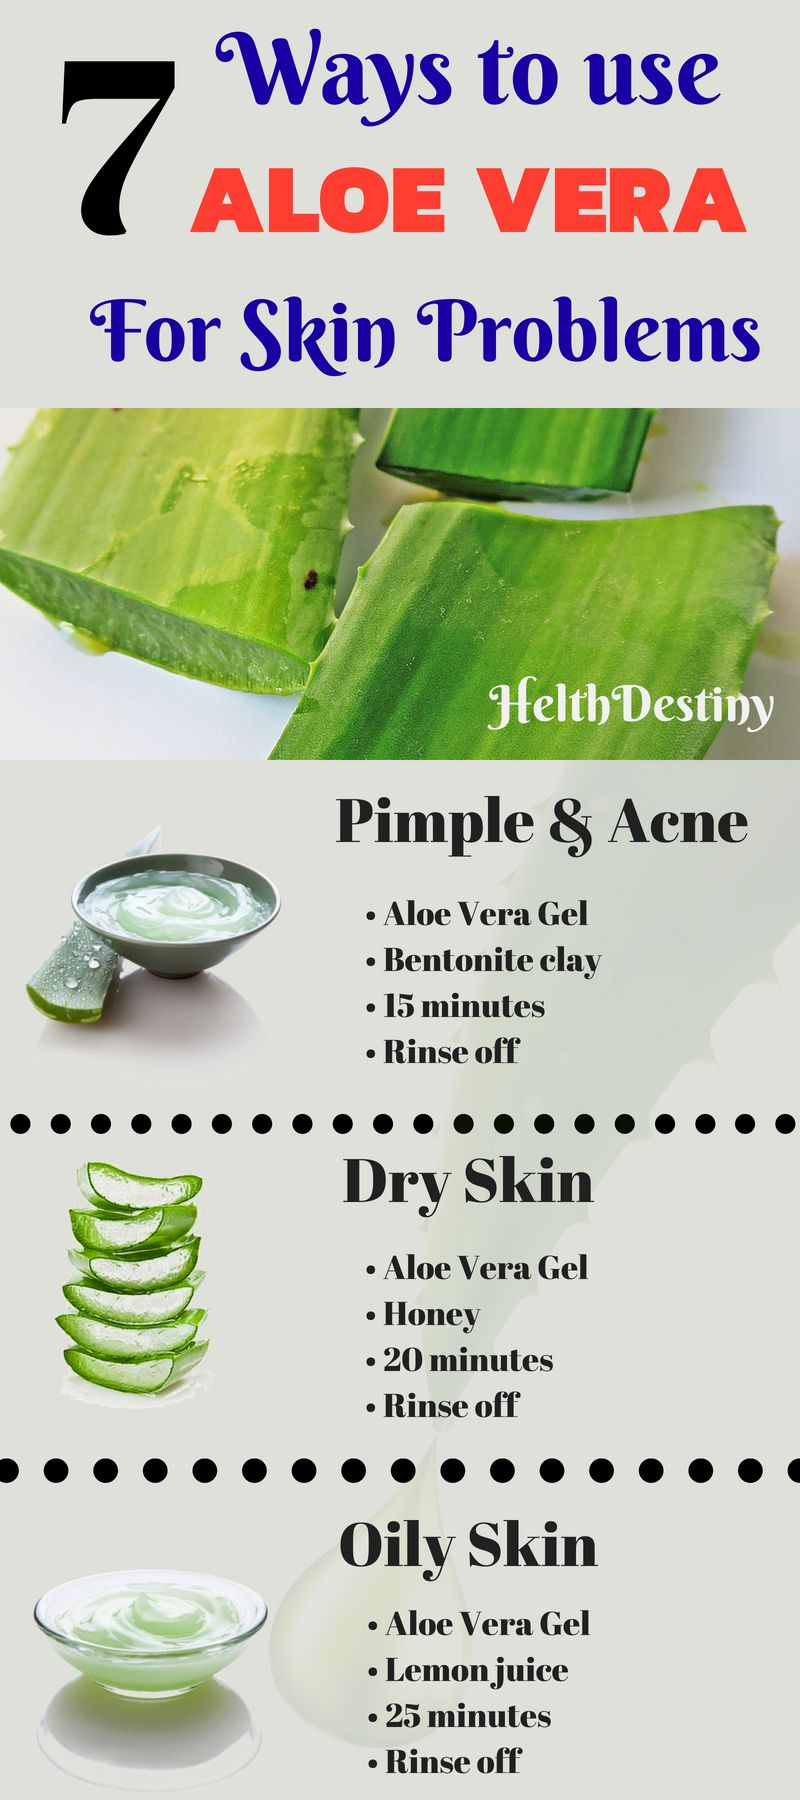 Aloe Vera Benefits For Skin And How To Use It Top 7 Helthdestiny Aloe Vera Skin Care Aloe Vera Benefits Aloe Vera For Skin